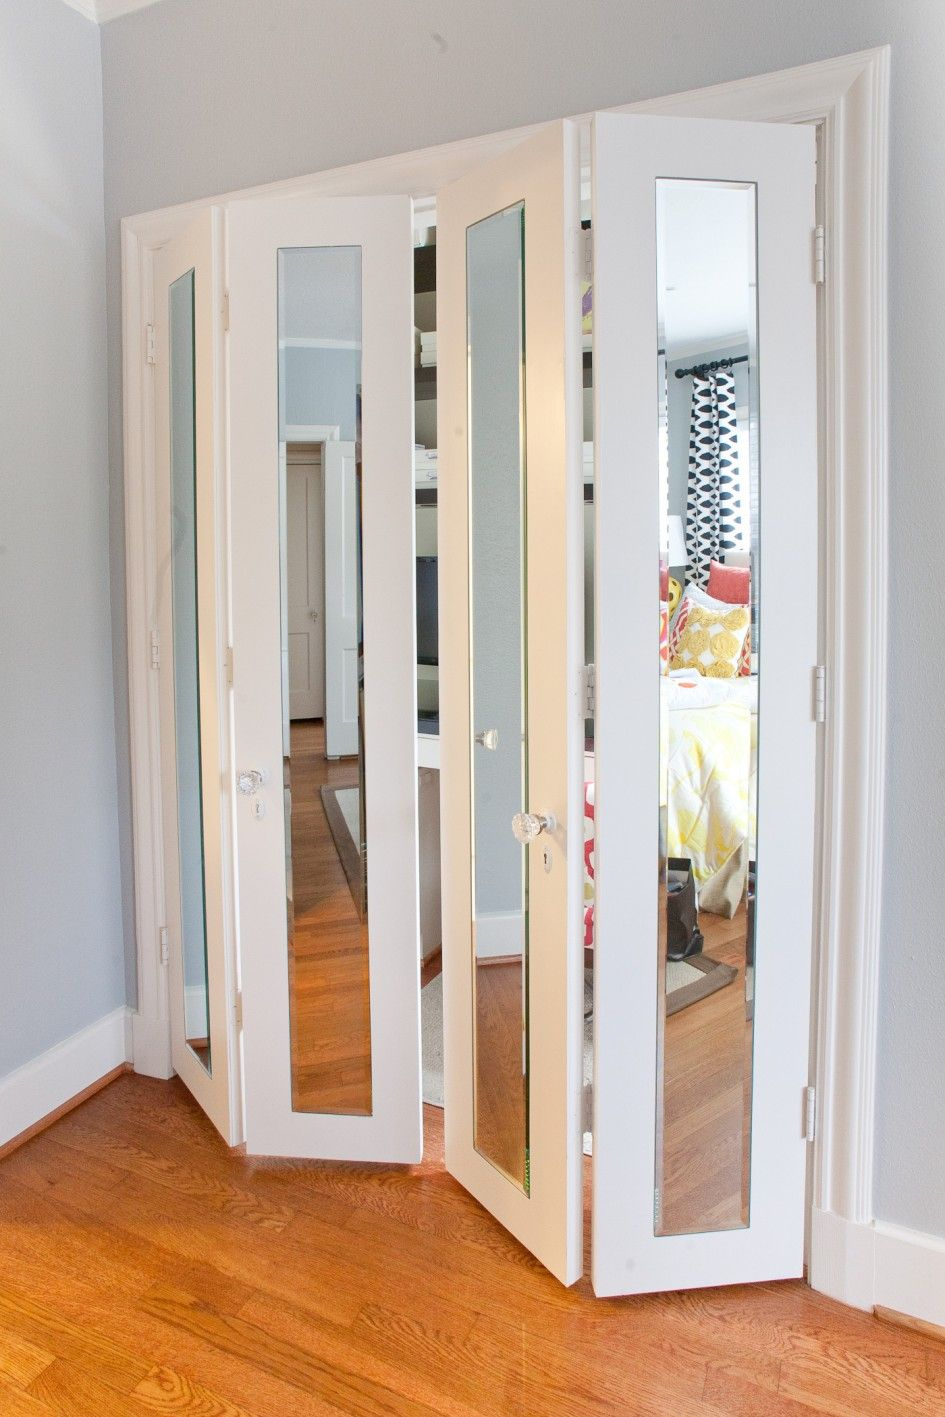 Wonderful Furniture, Fashionable Small Wall Closet Doors With Wooden Frames And Chic  Mirror On It: Amazing Closet Doors Design